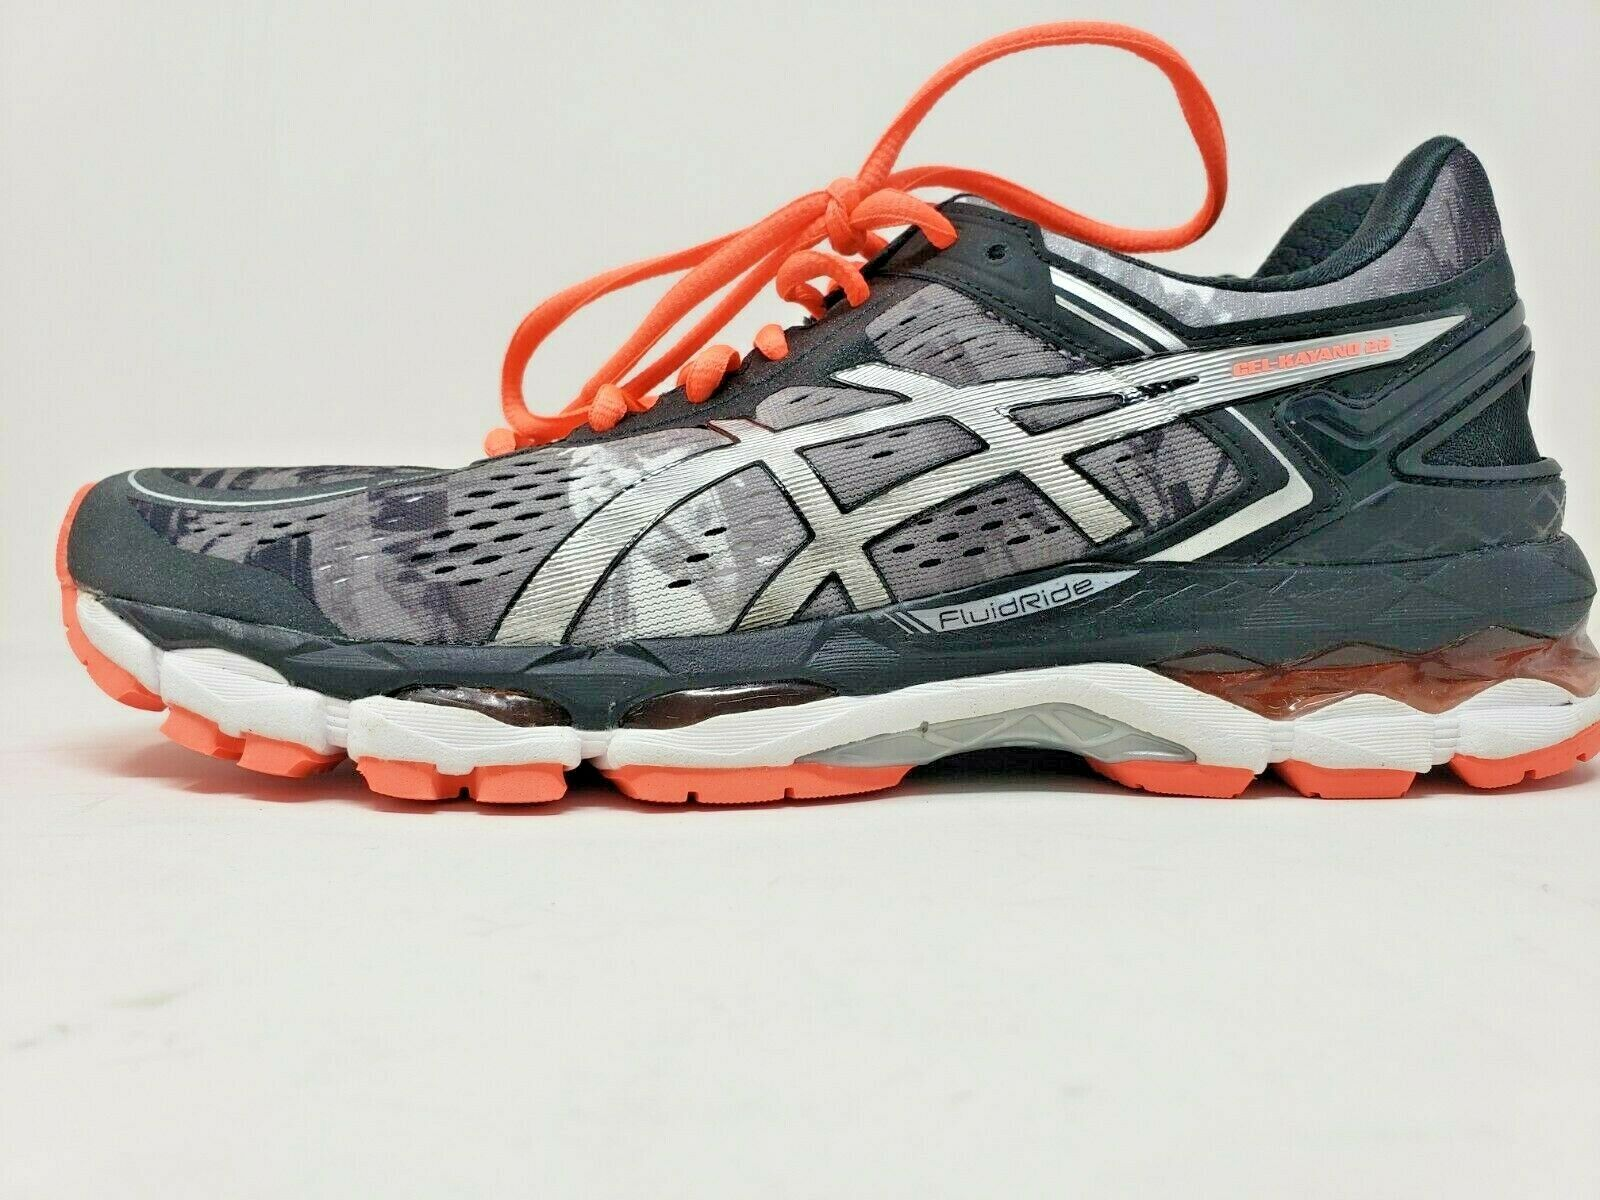 ASICS GEL-KAYANO 22 T597N-9006 WOMEN'S SIZE 11 BLACK FLASH  CORAL  WHITE NIB